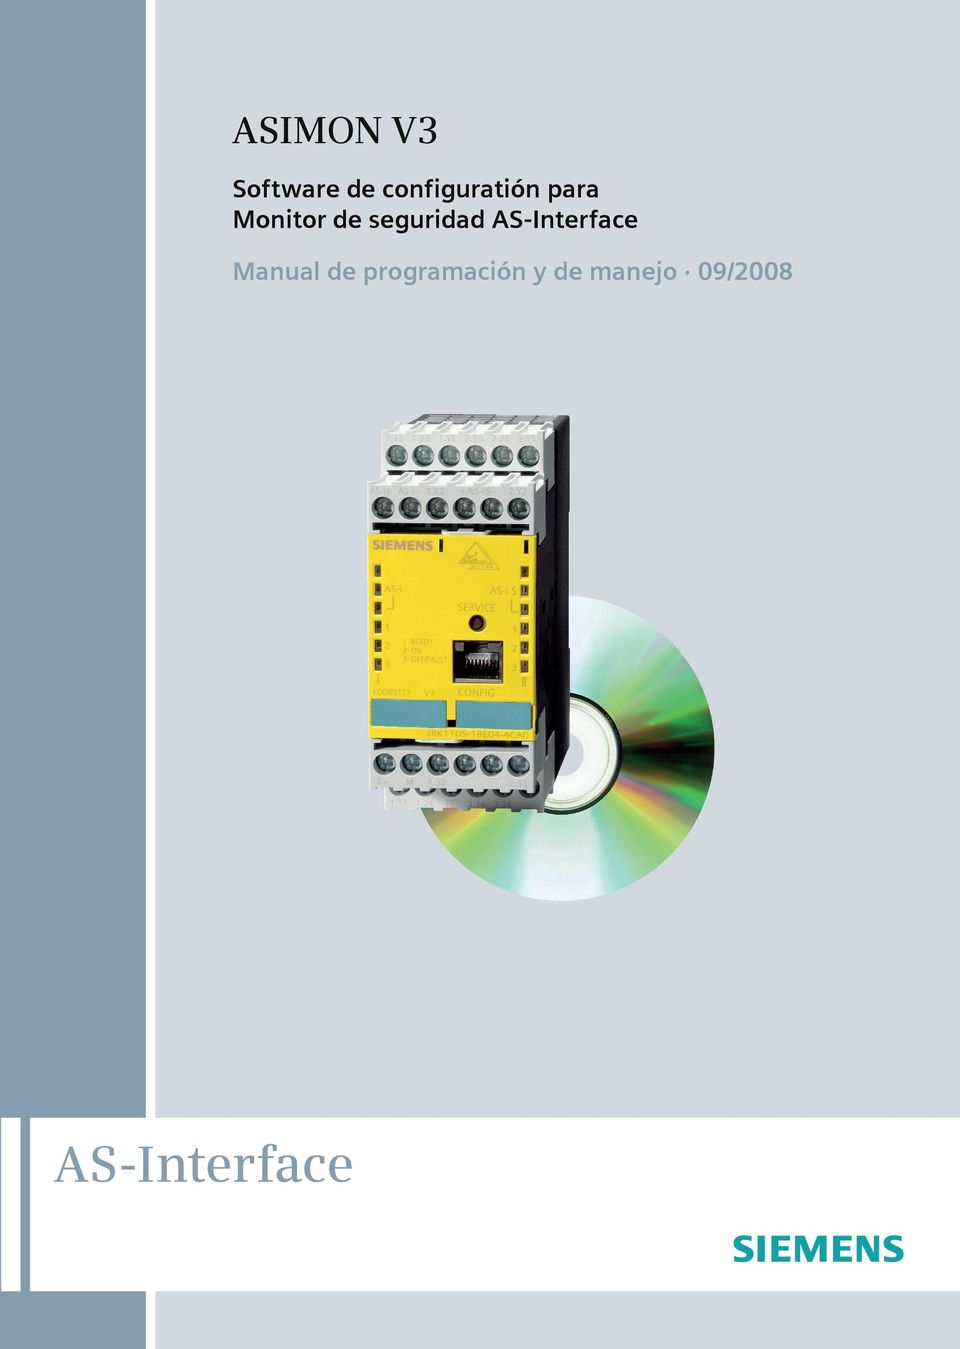 seguridad AS-Interface Manual de